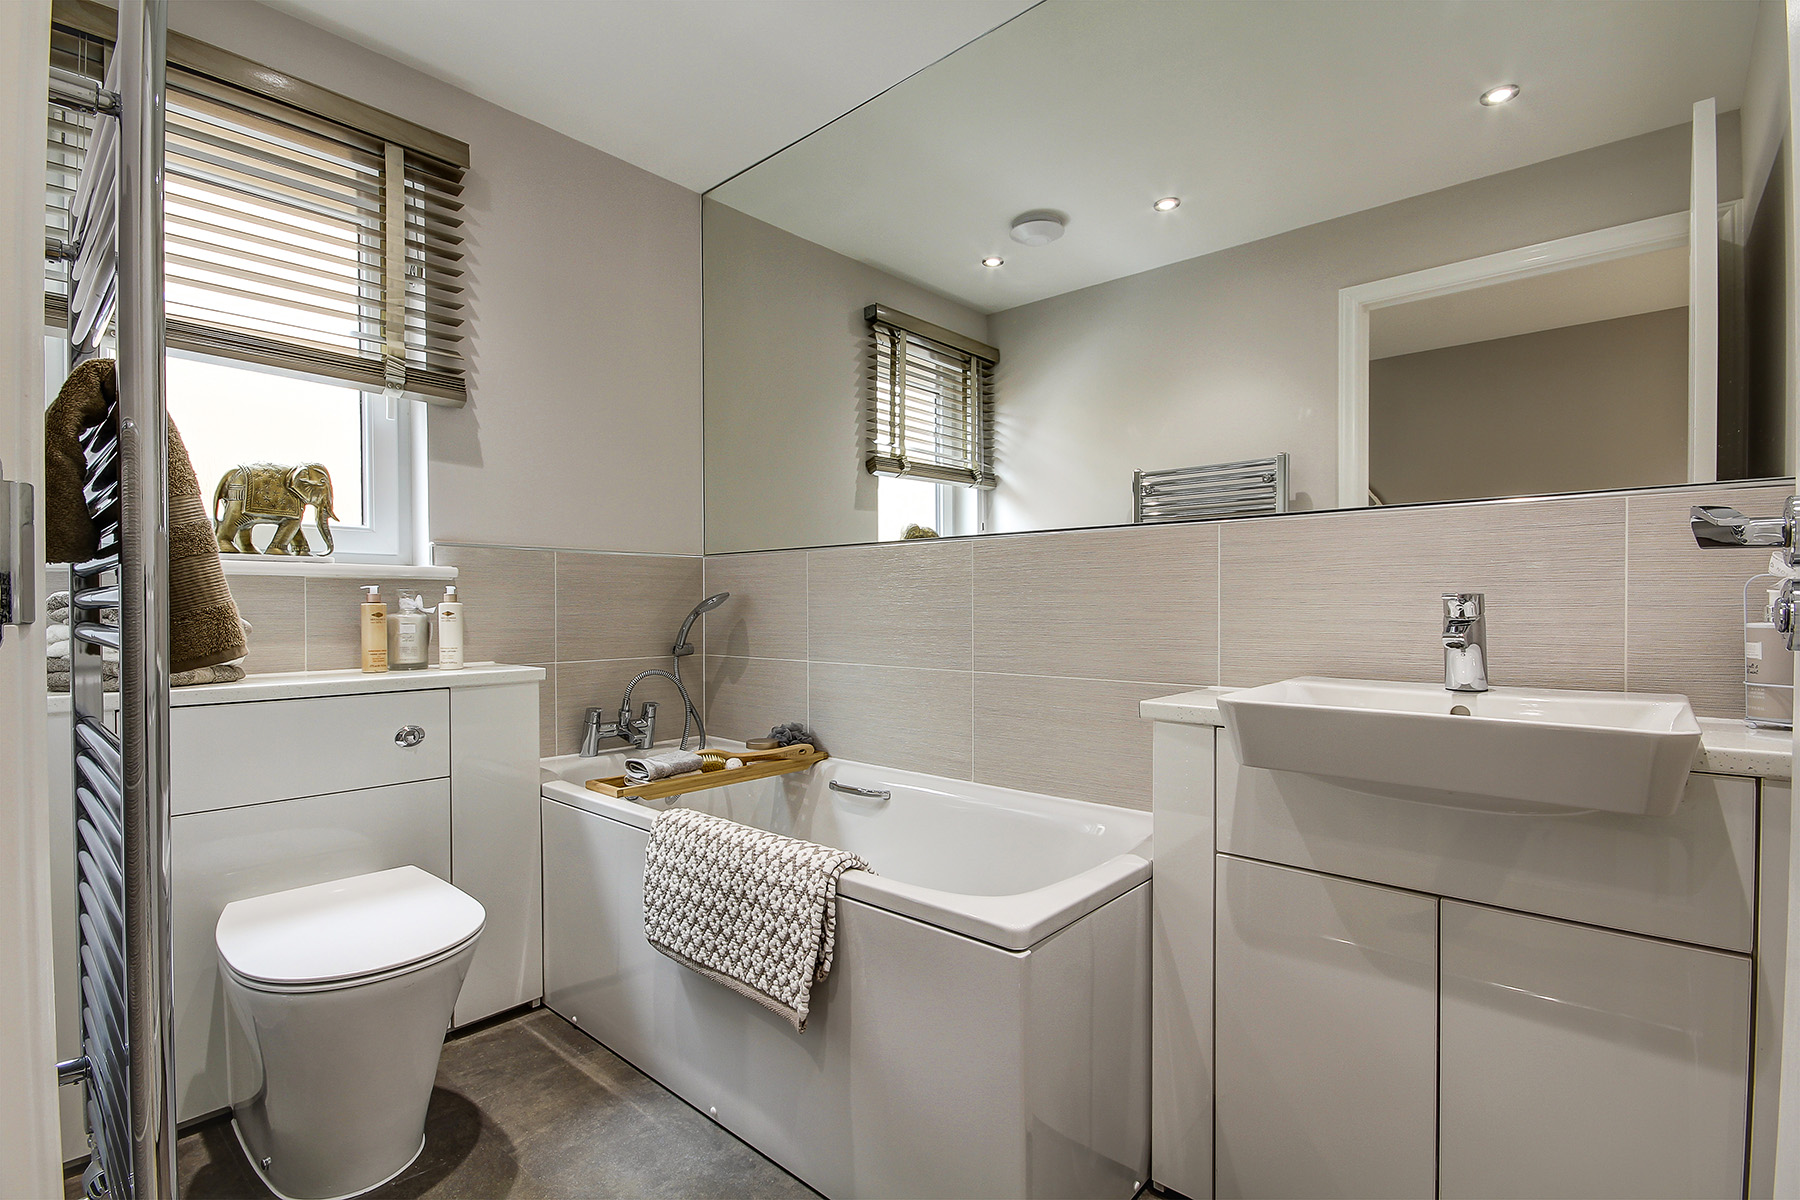 Broomhouse - Douglas - Bathroom